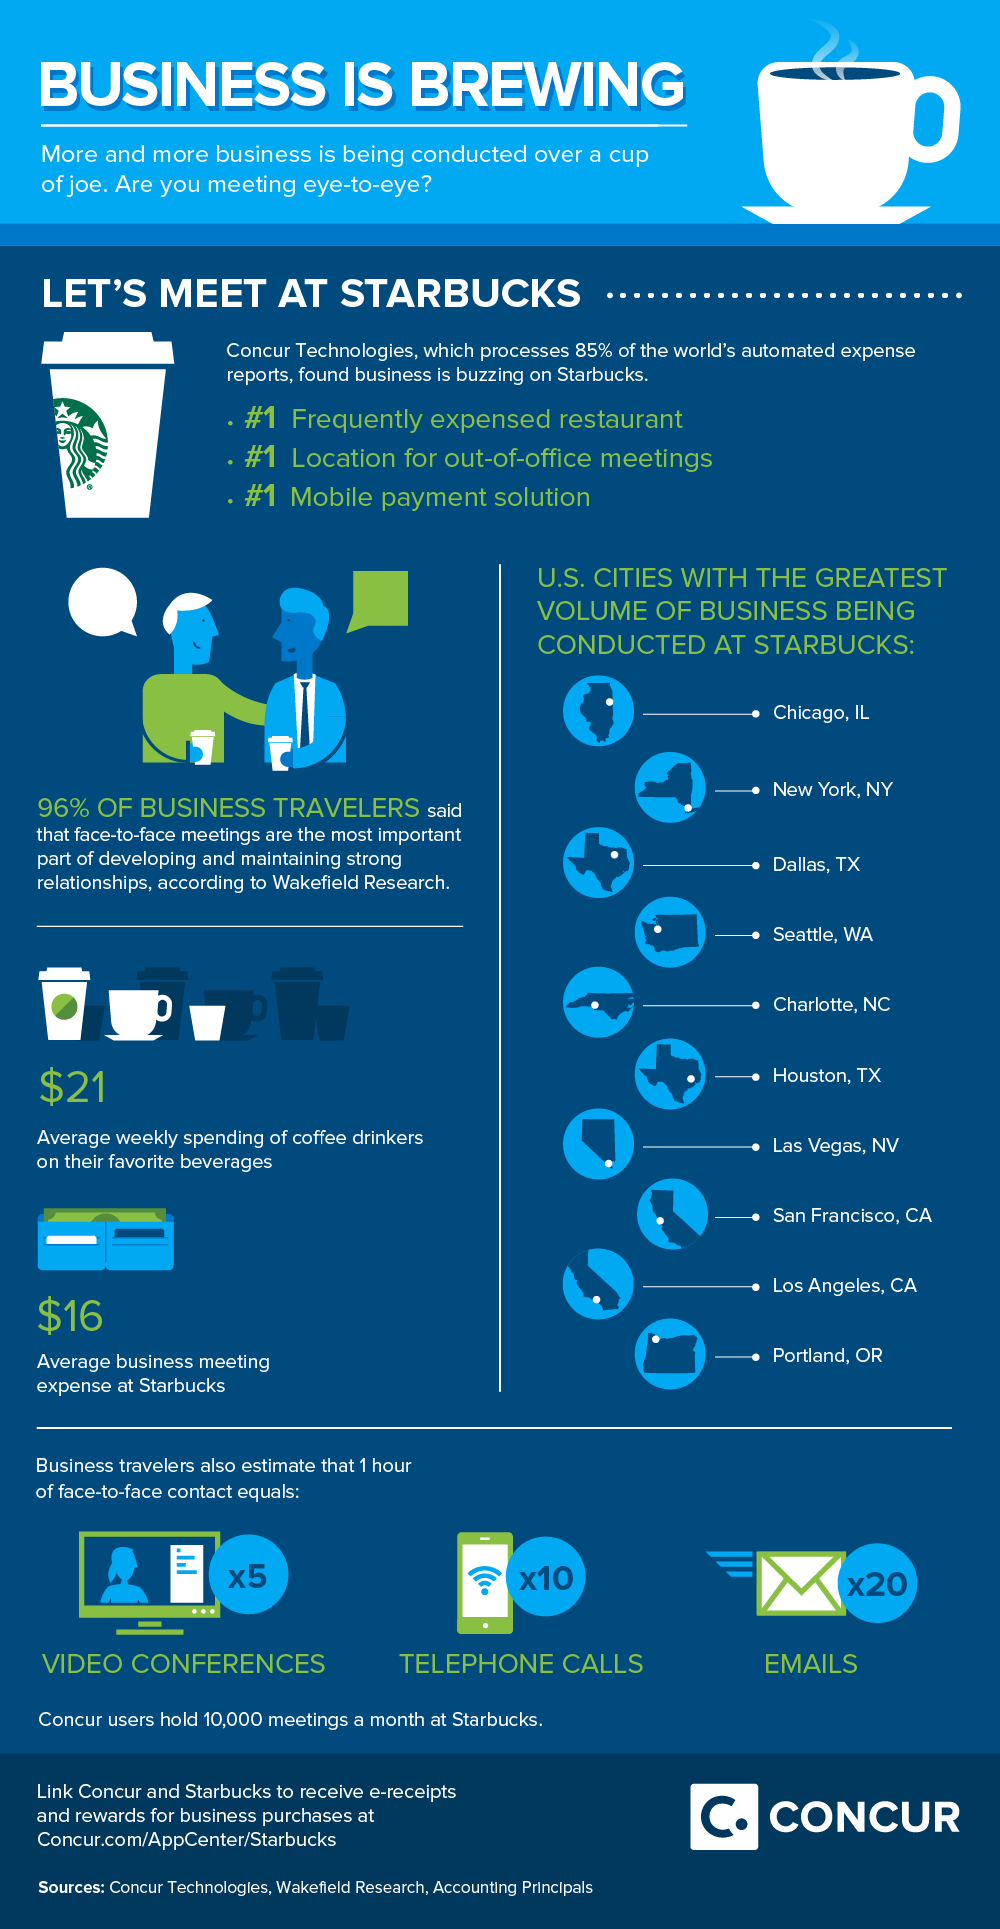 150211_Concur+Starbucks_WorkingWired_Infographic